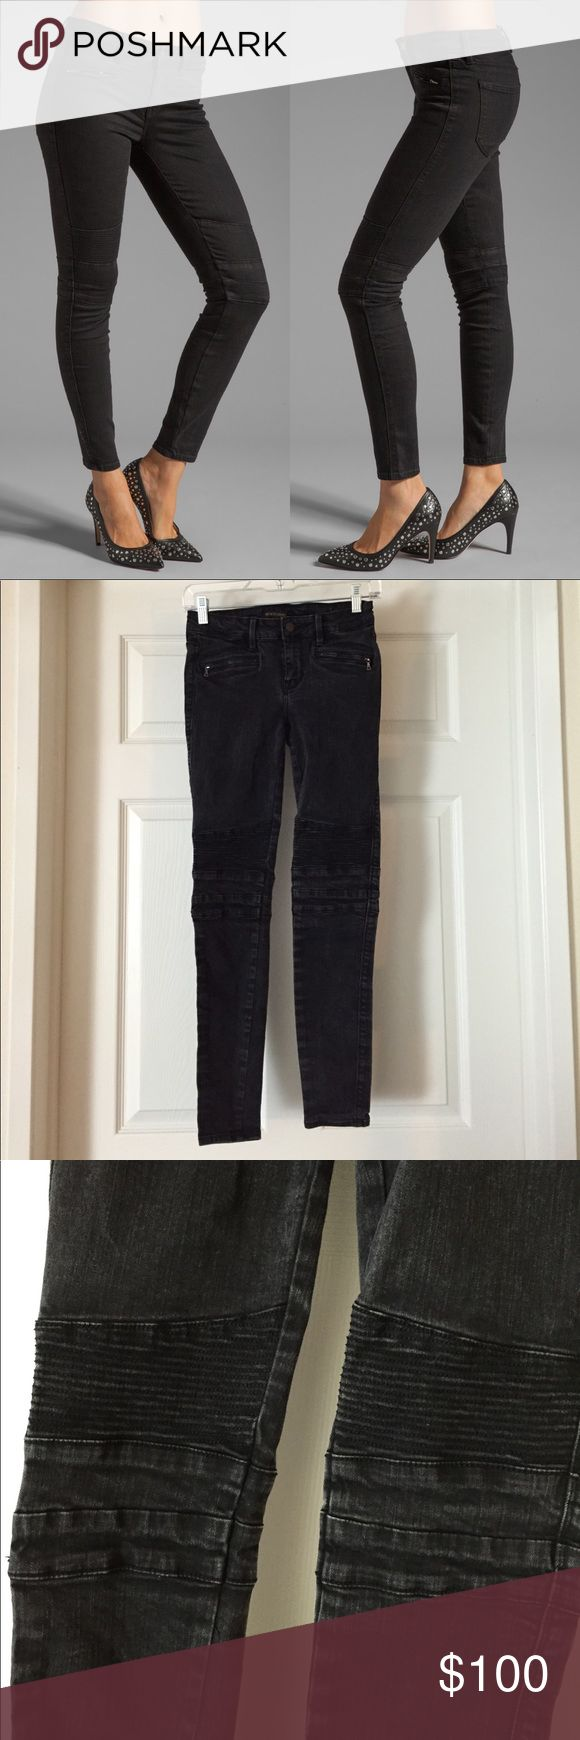 26 GENTIC DENIM THE CAMERON in RAVEN MOTO JEANS Worn a couple times. Still lots of life left. Tons of stretch in this pair. Size 26 Genetic Denim Jeans Skinny